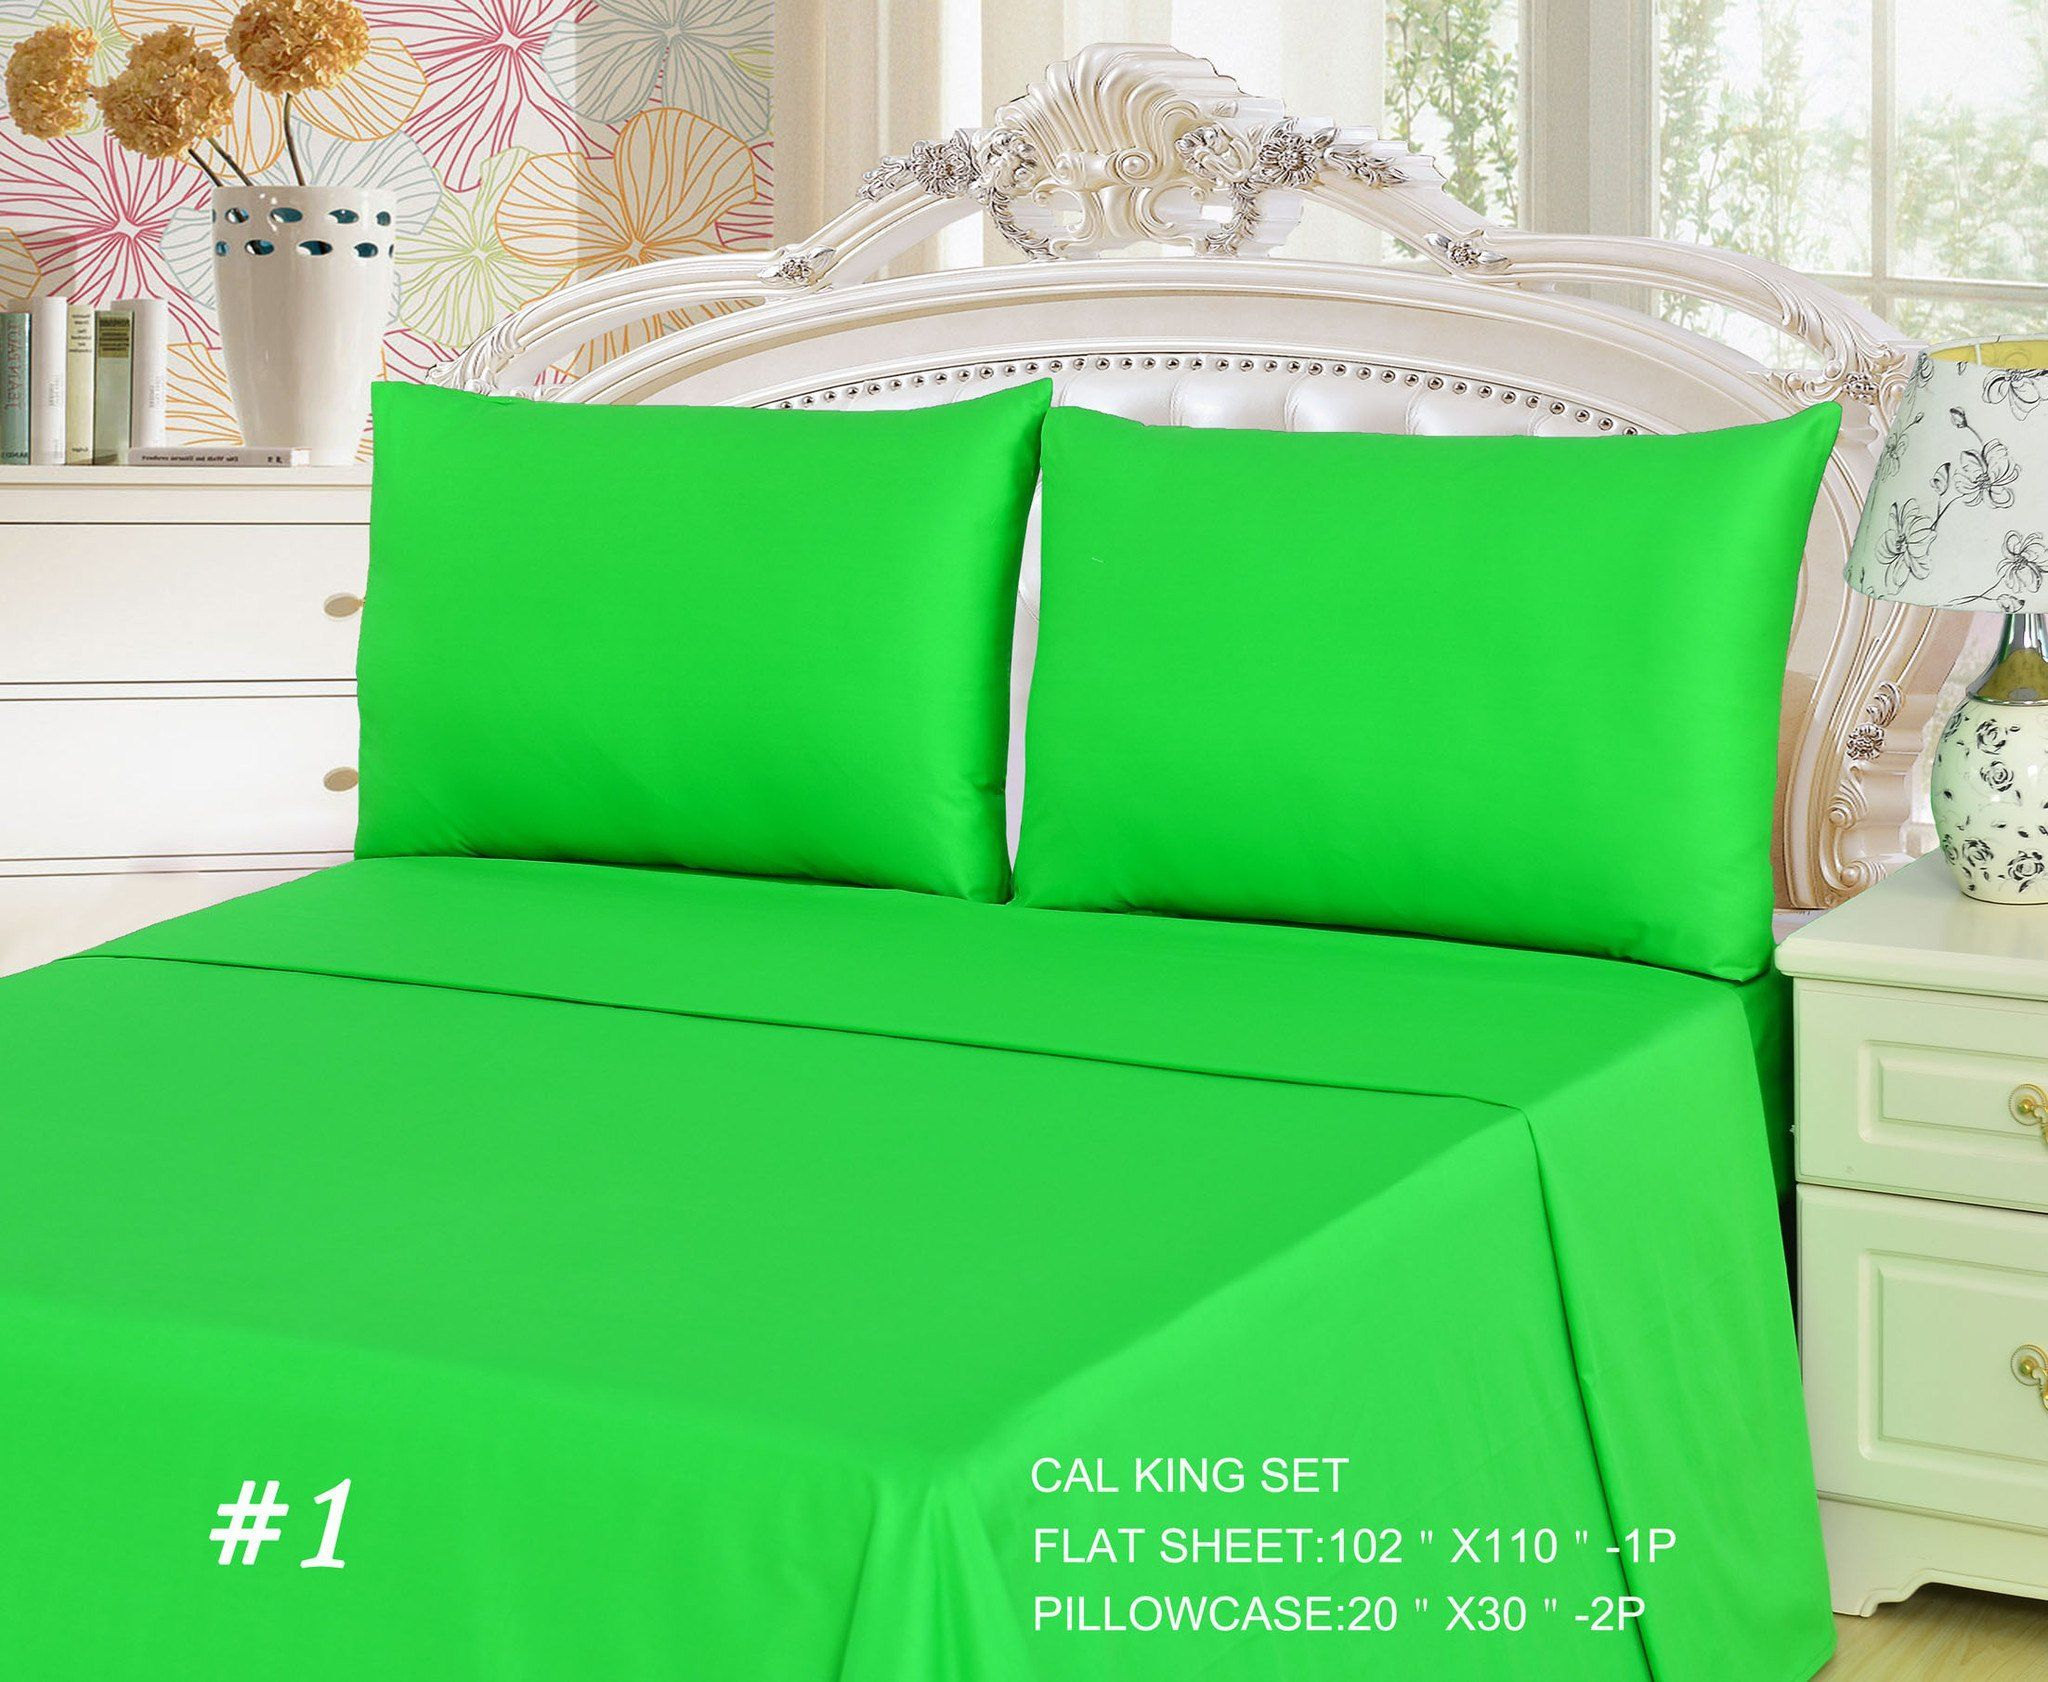 Tache 2 3 Piece Lime Green Bed Sheet (Flat Sheet)